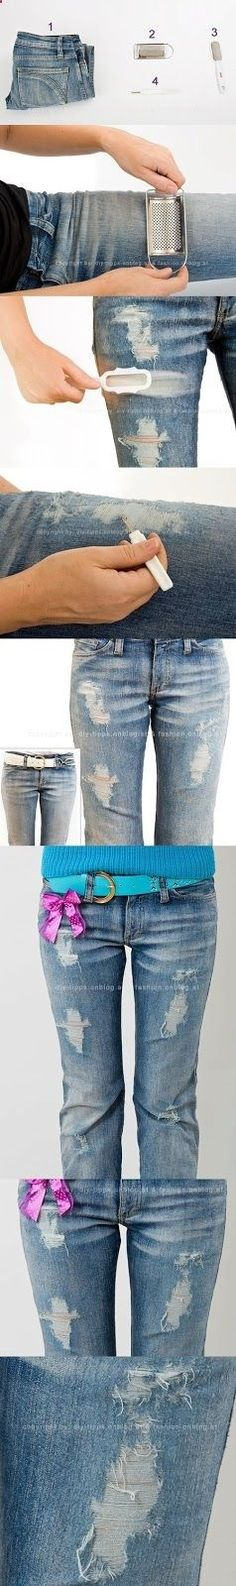 I would like to distress the back pocket of a pair of jeans.